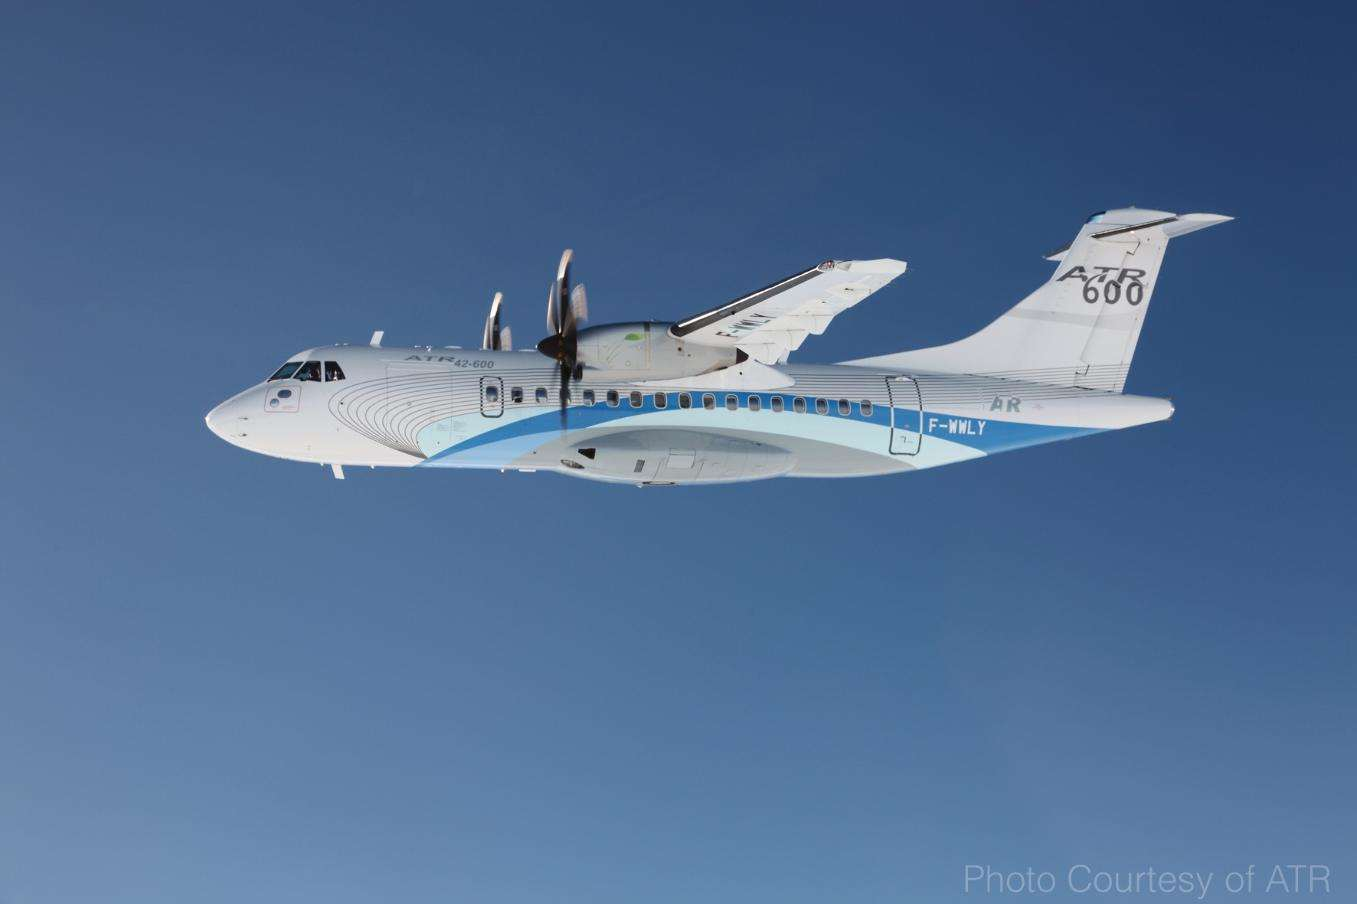 Leonardo will produce the composite fuselage of the turboprop demonstrator Clean Sky 2